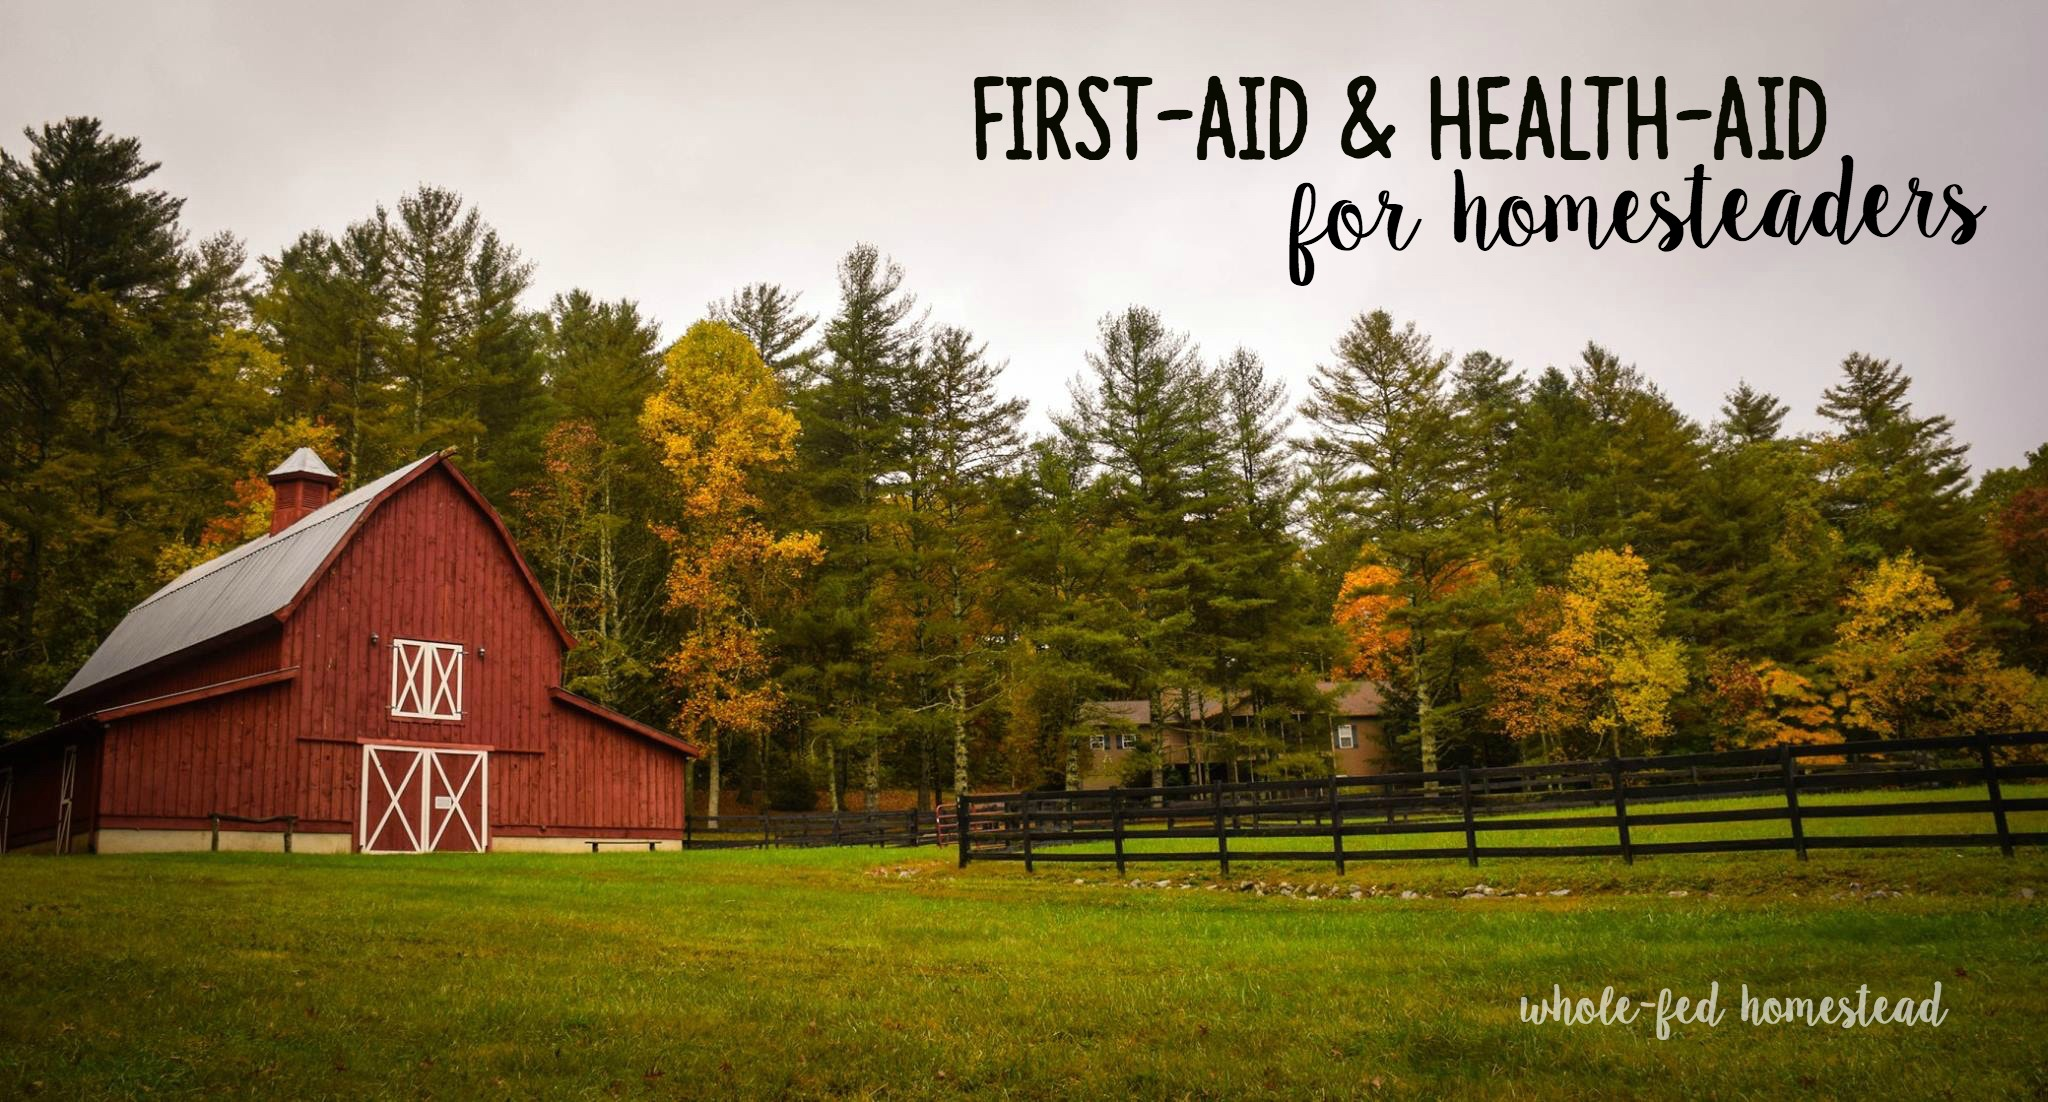 First Aid & Health Aid for Homesteaders (and Everyone) Dealing with Homestead Emergencies | Whole-Fed Homestead